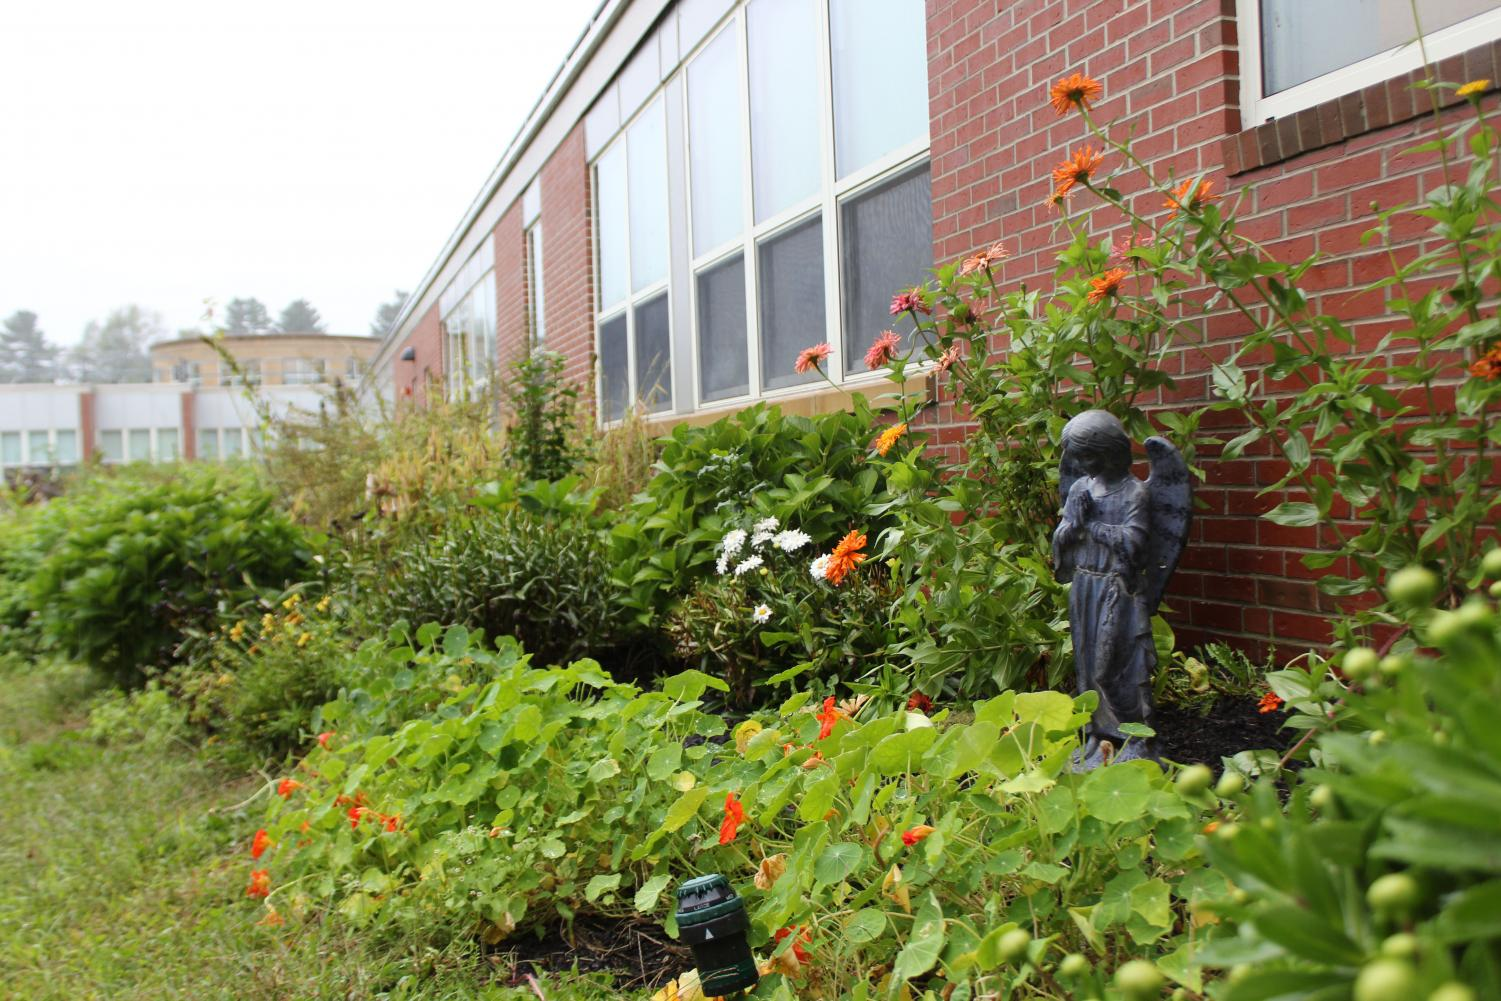 The garden provides a variety of benefits to the student body, among them a better understanding of nutrition.